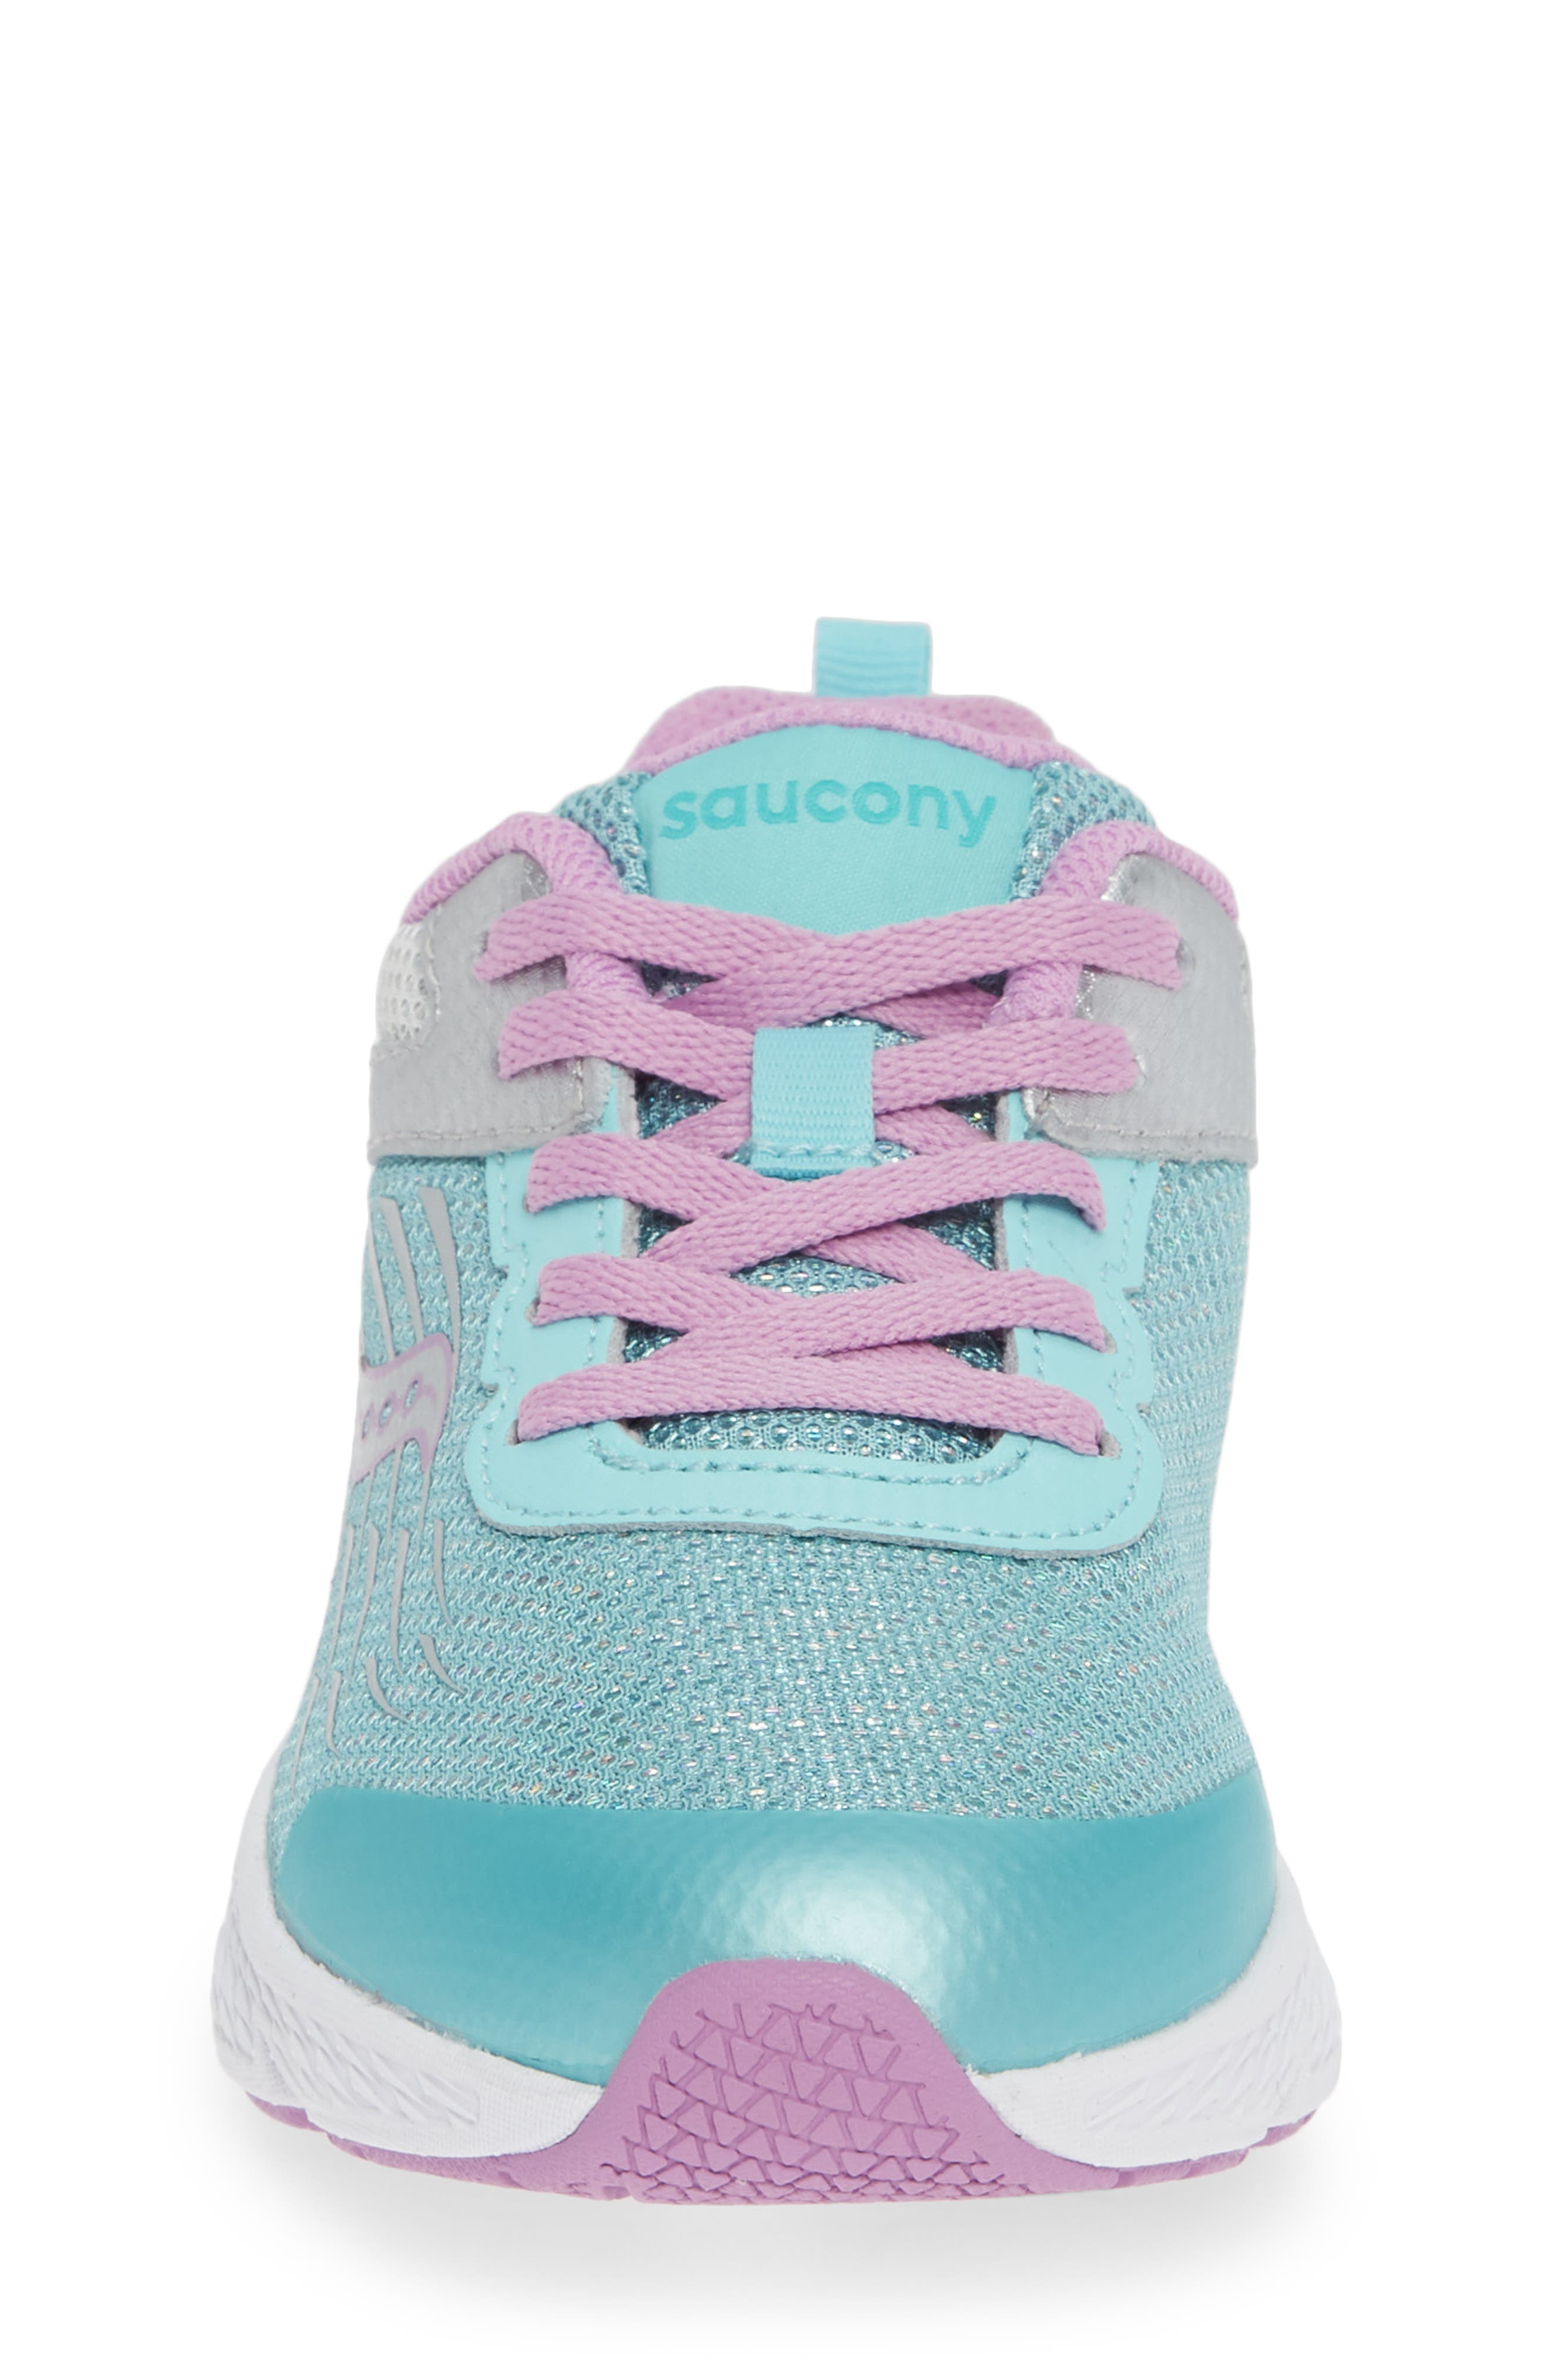 Wind Sneaker,                             Alternate thumbnail 4, color,                             TURQUOISE/ SILVER